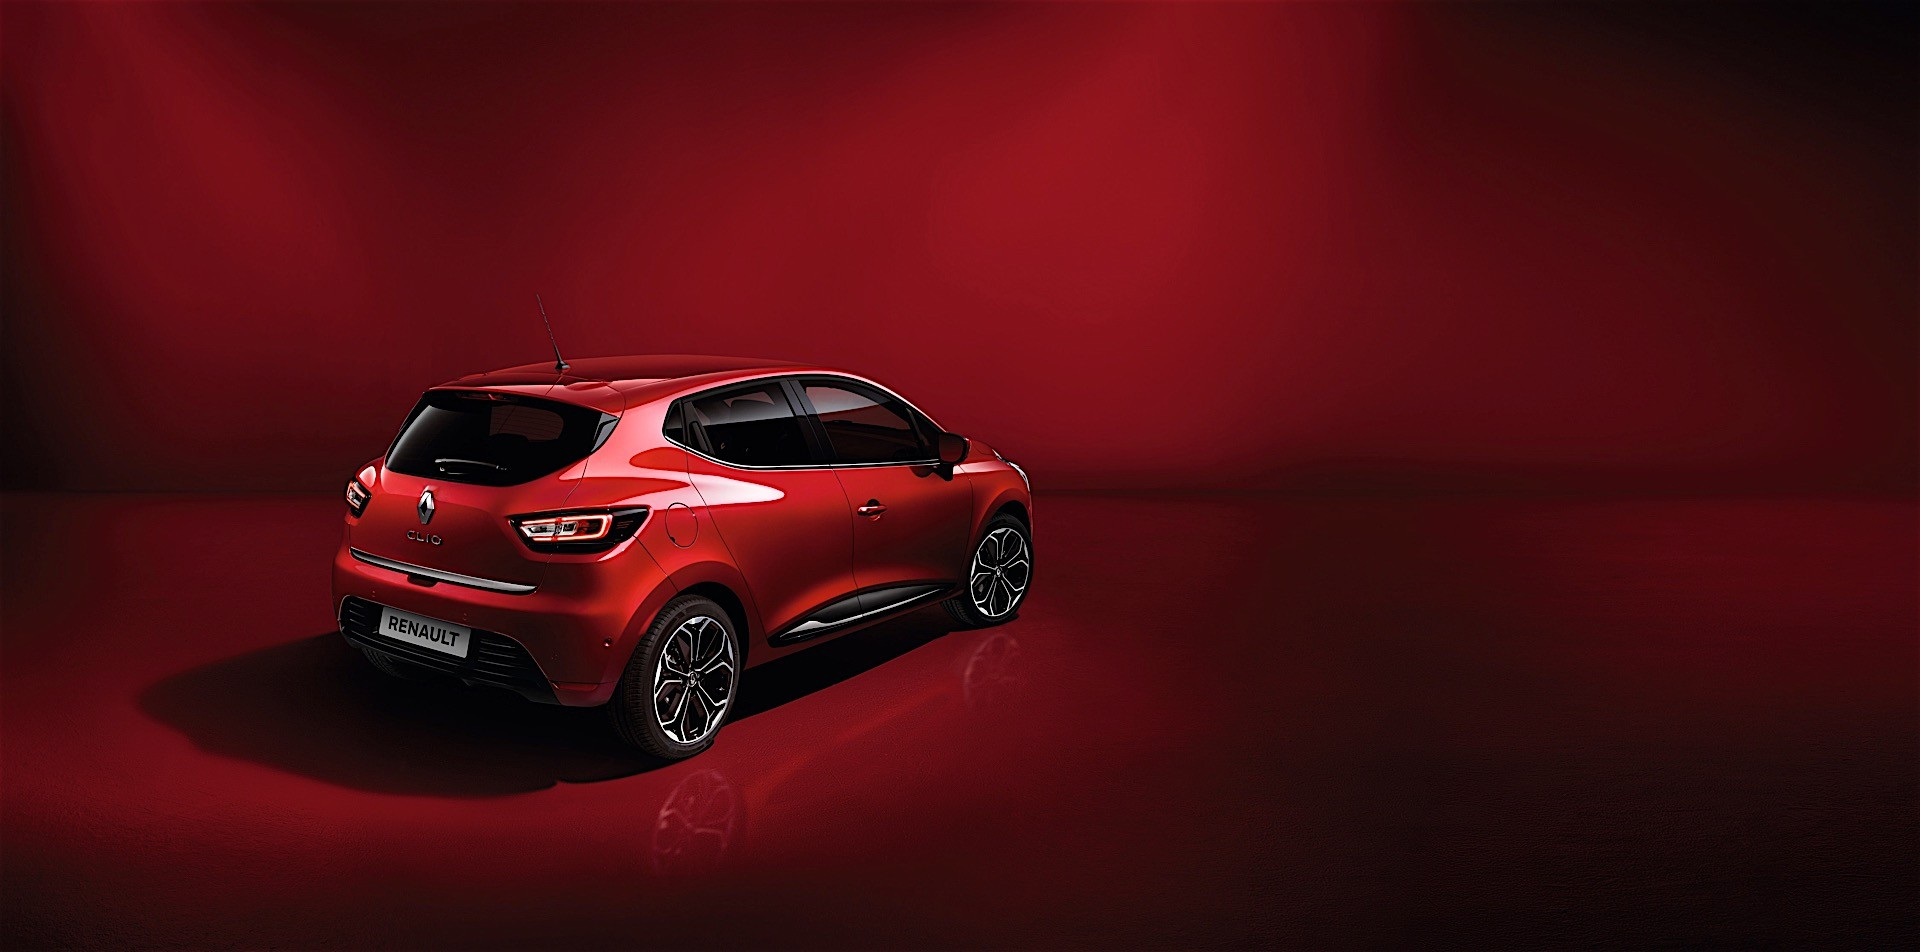 renault launches clio edition one inspired by mercedes autoevolution. Black Bedroom Furniture Sets. Home Design Ideas